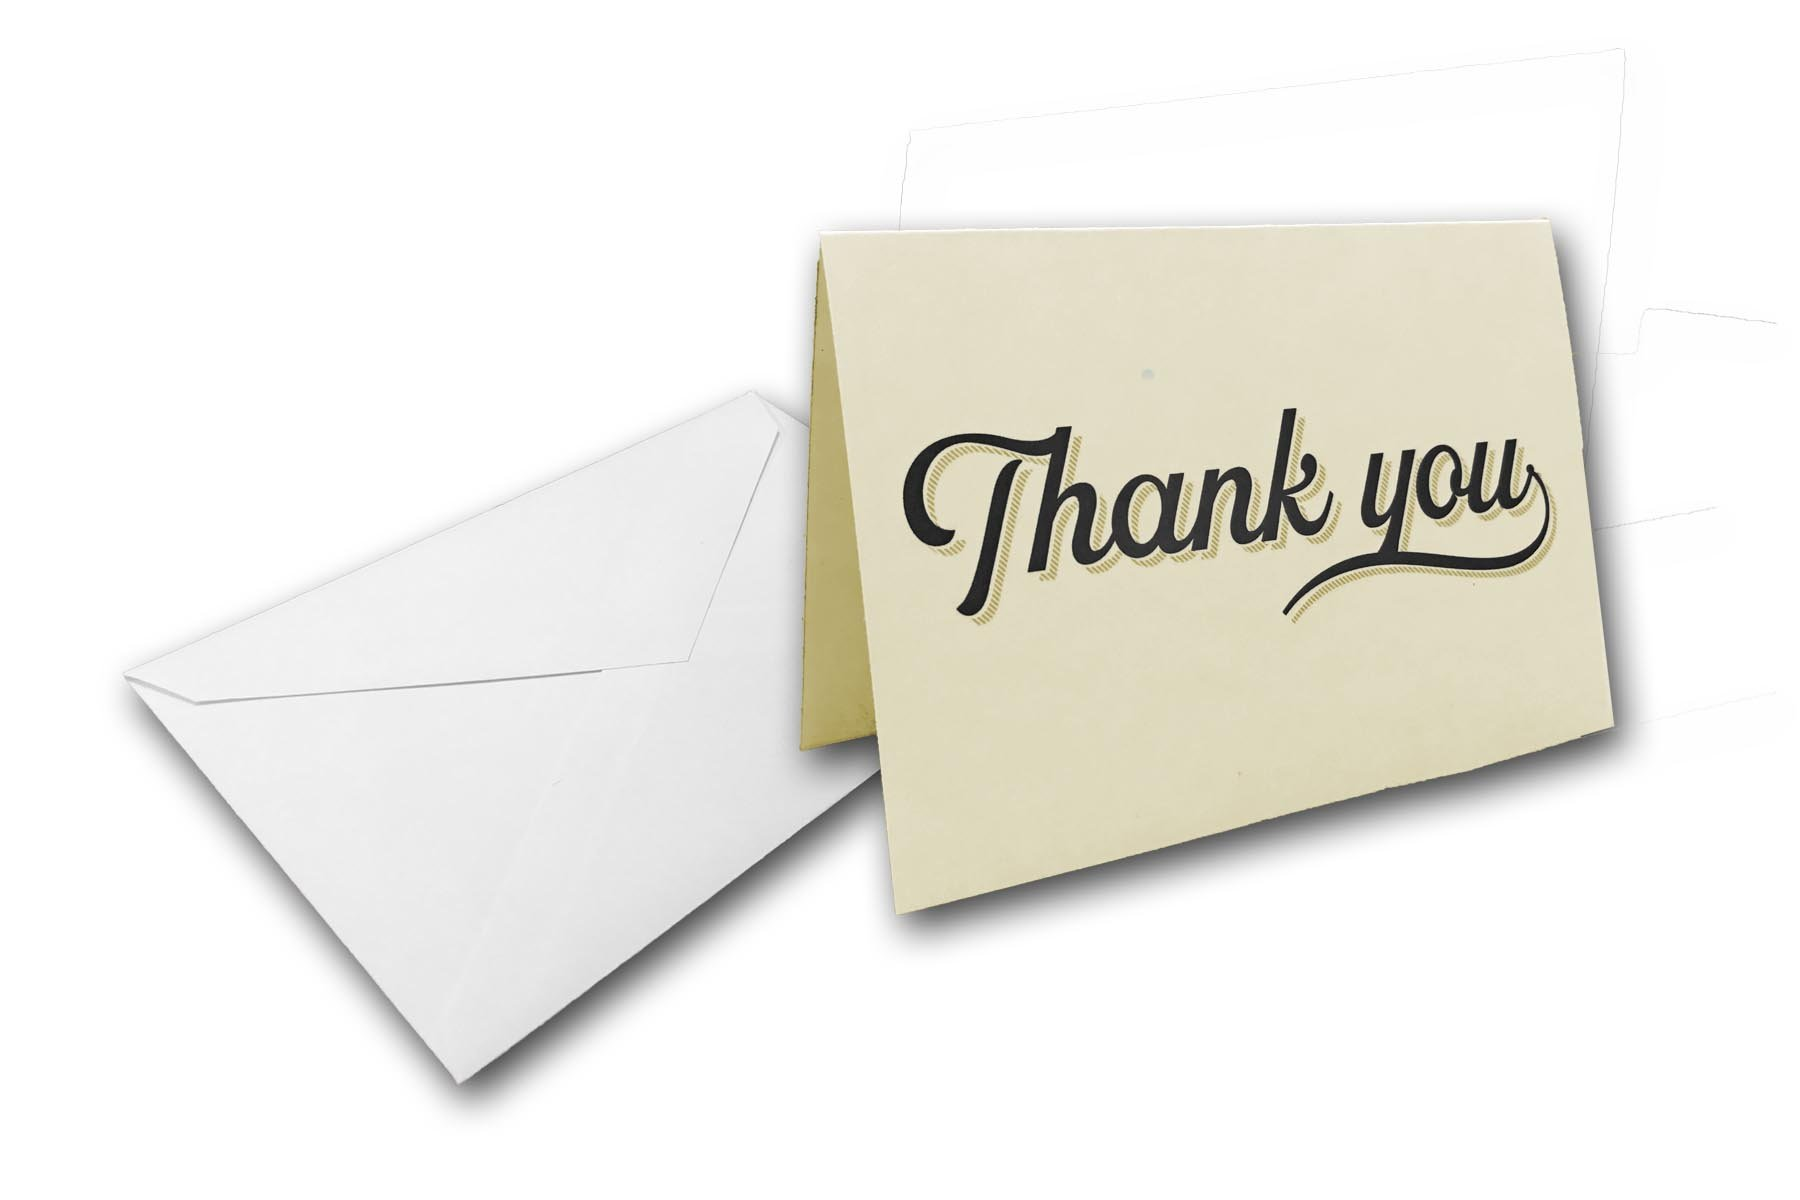 Blank Colored Thank You Cards with Envelopes - 40 Cards & 40 Envelopes Great for Wedding, Baby Shower, Business, Grad Party, Etc. (Natural)